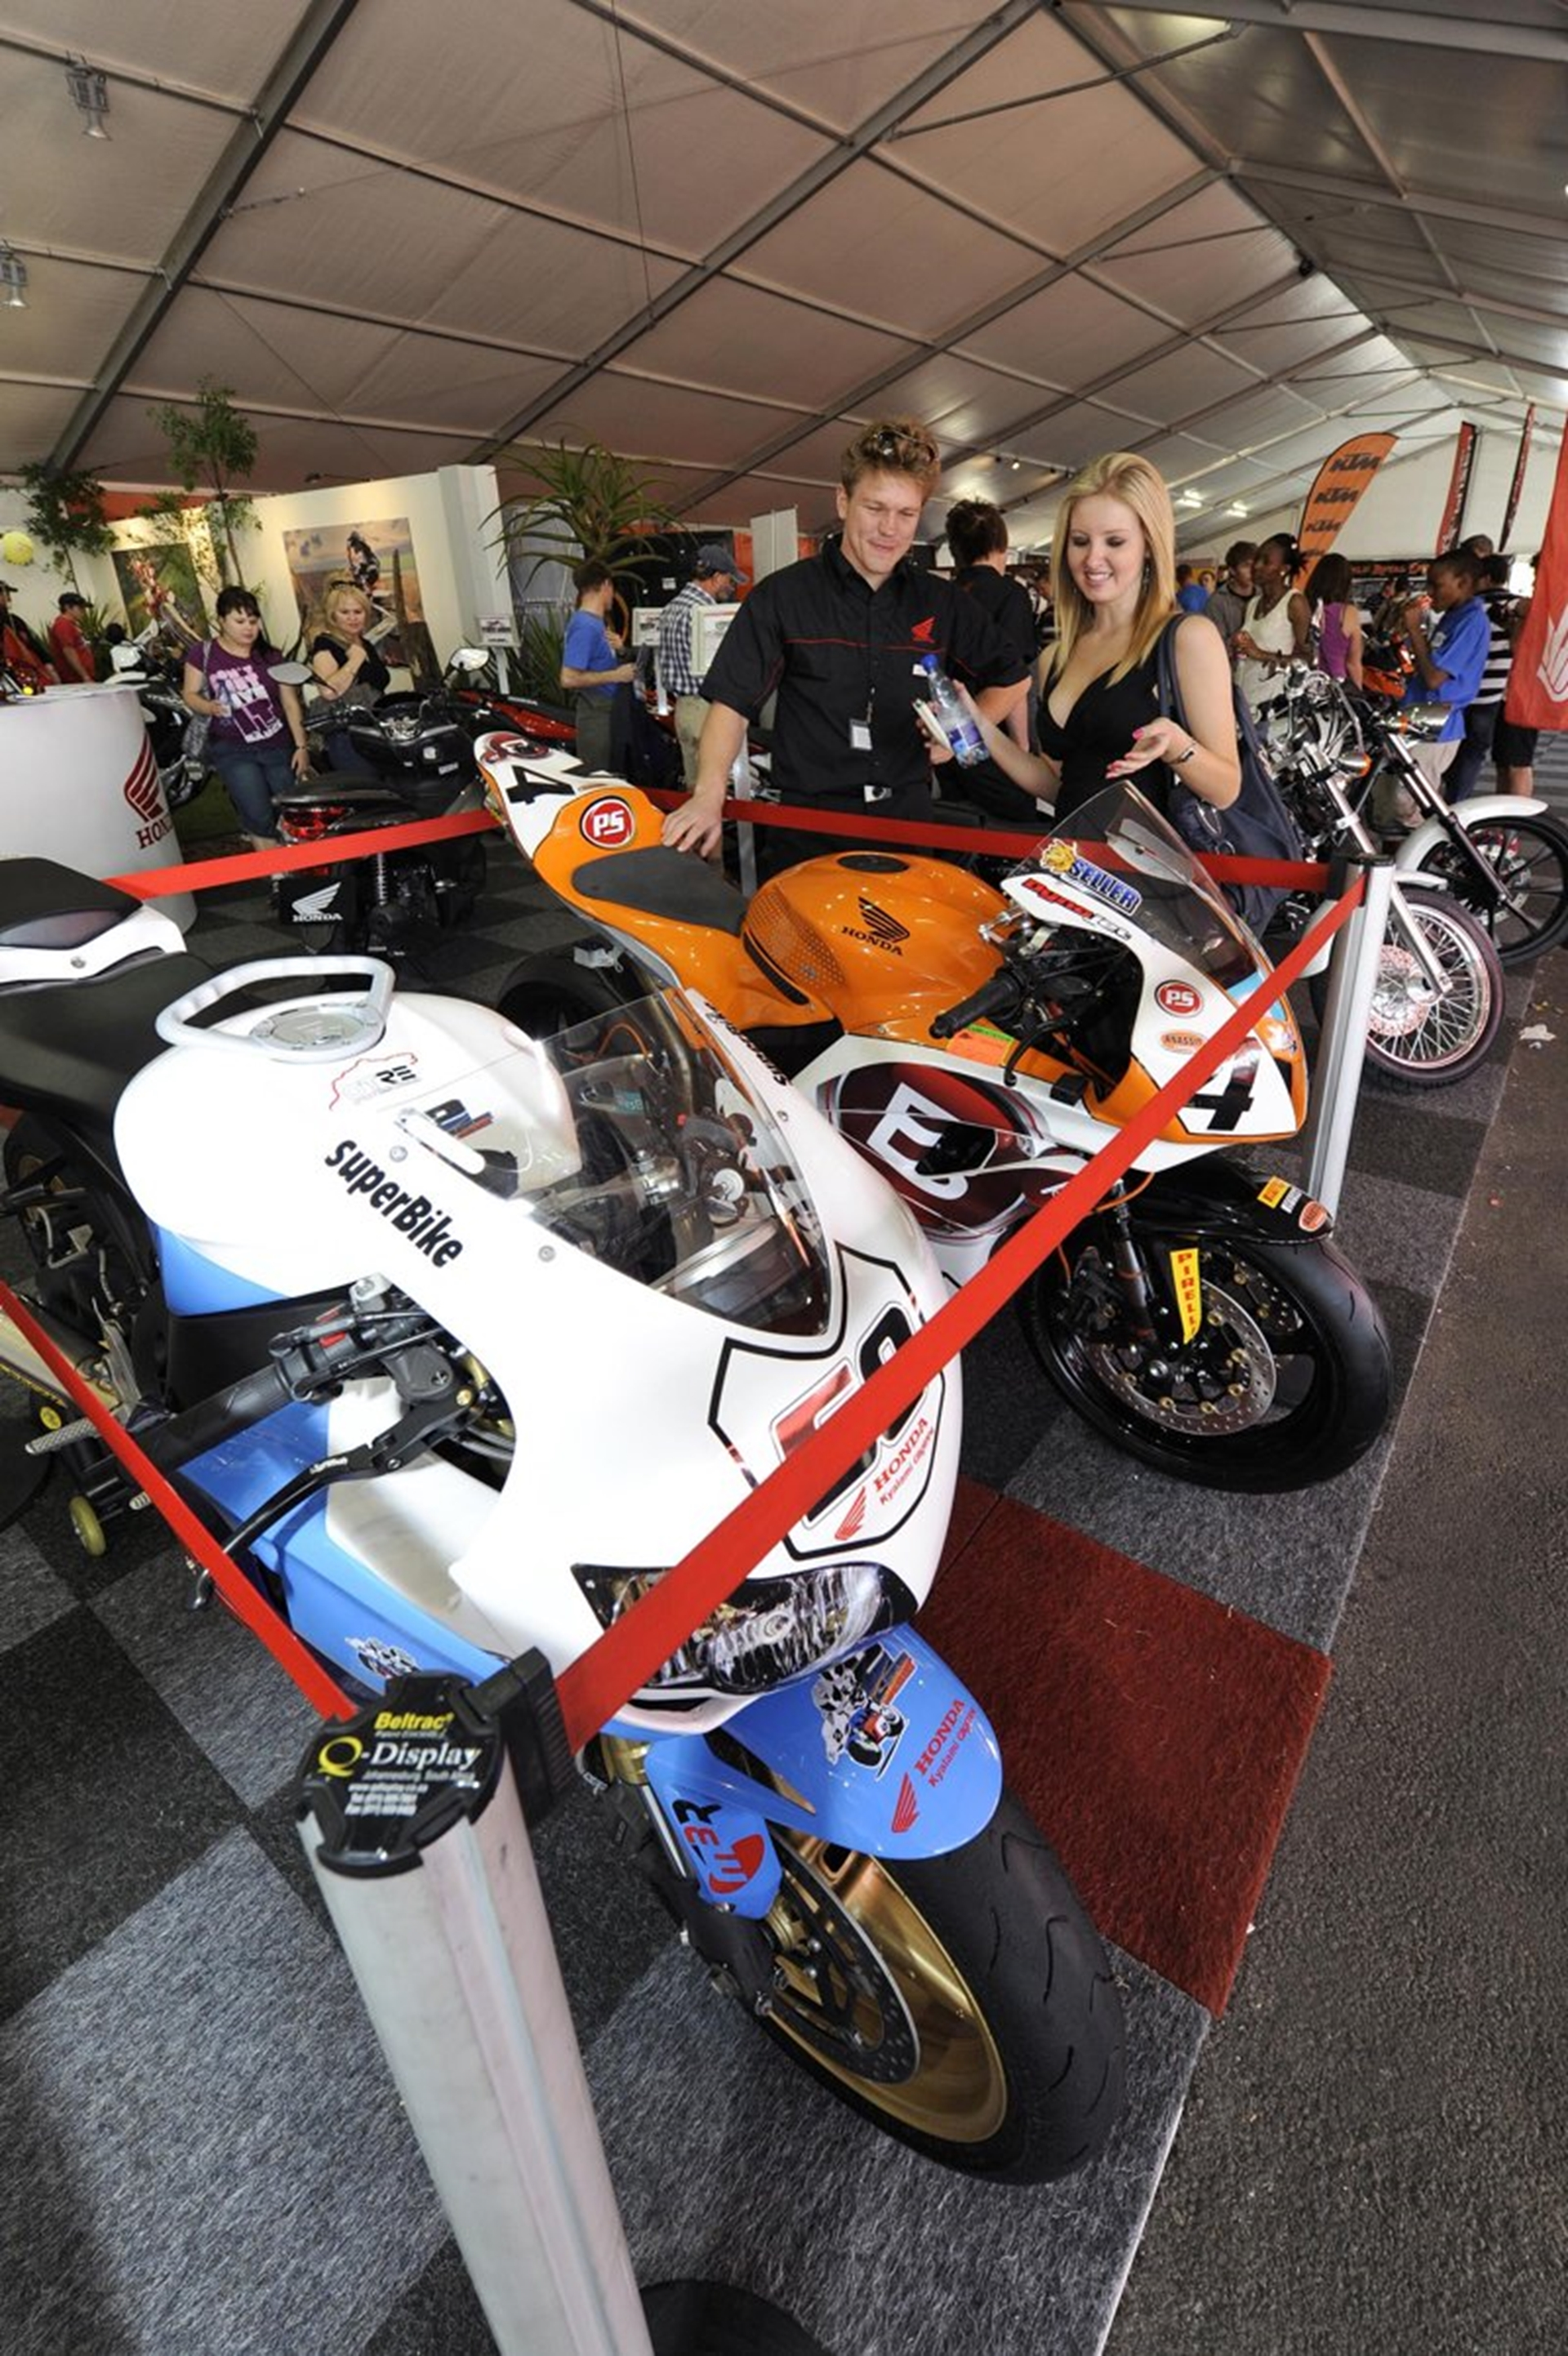 Motorcycles at the Johannesburg Motor Show 2011